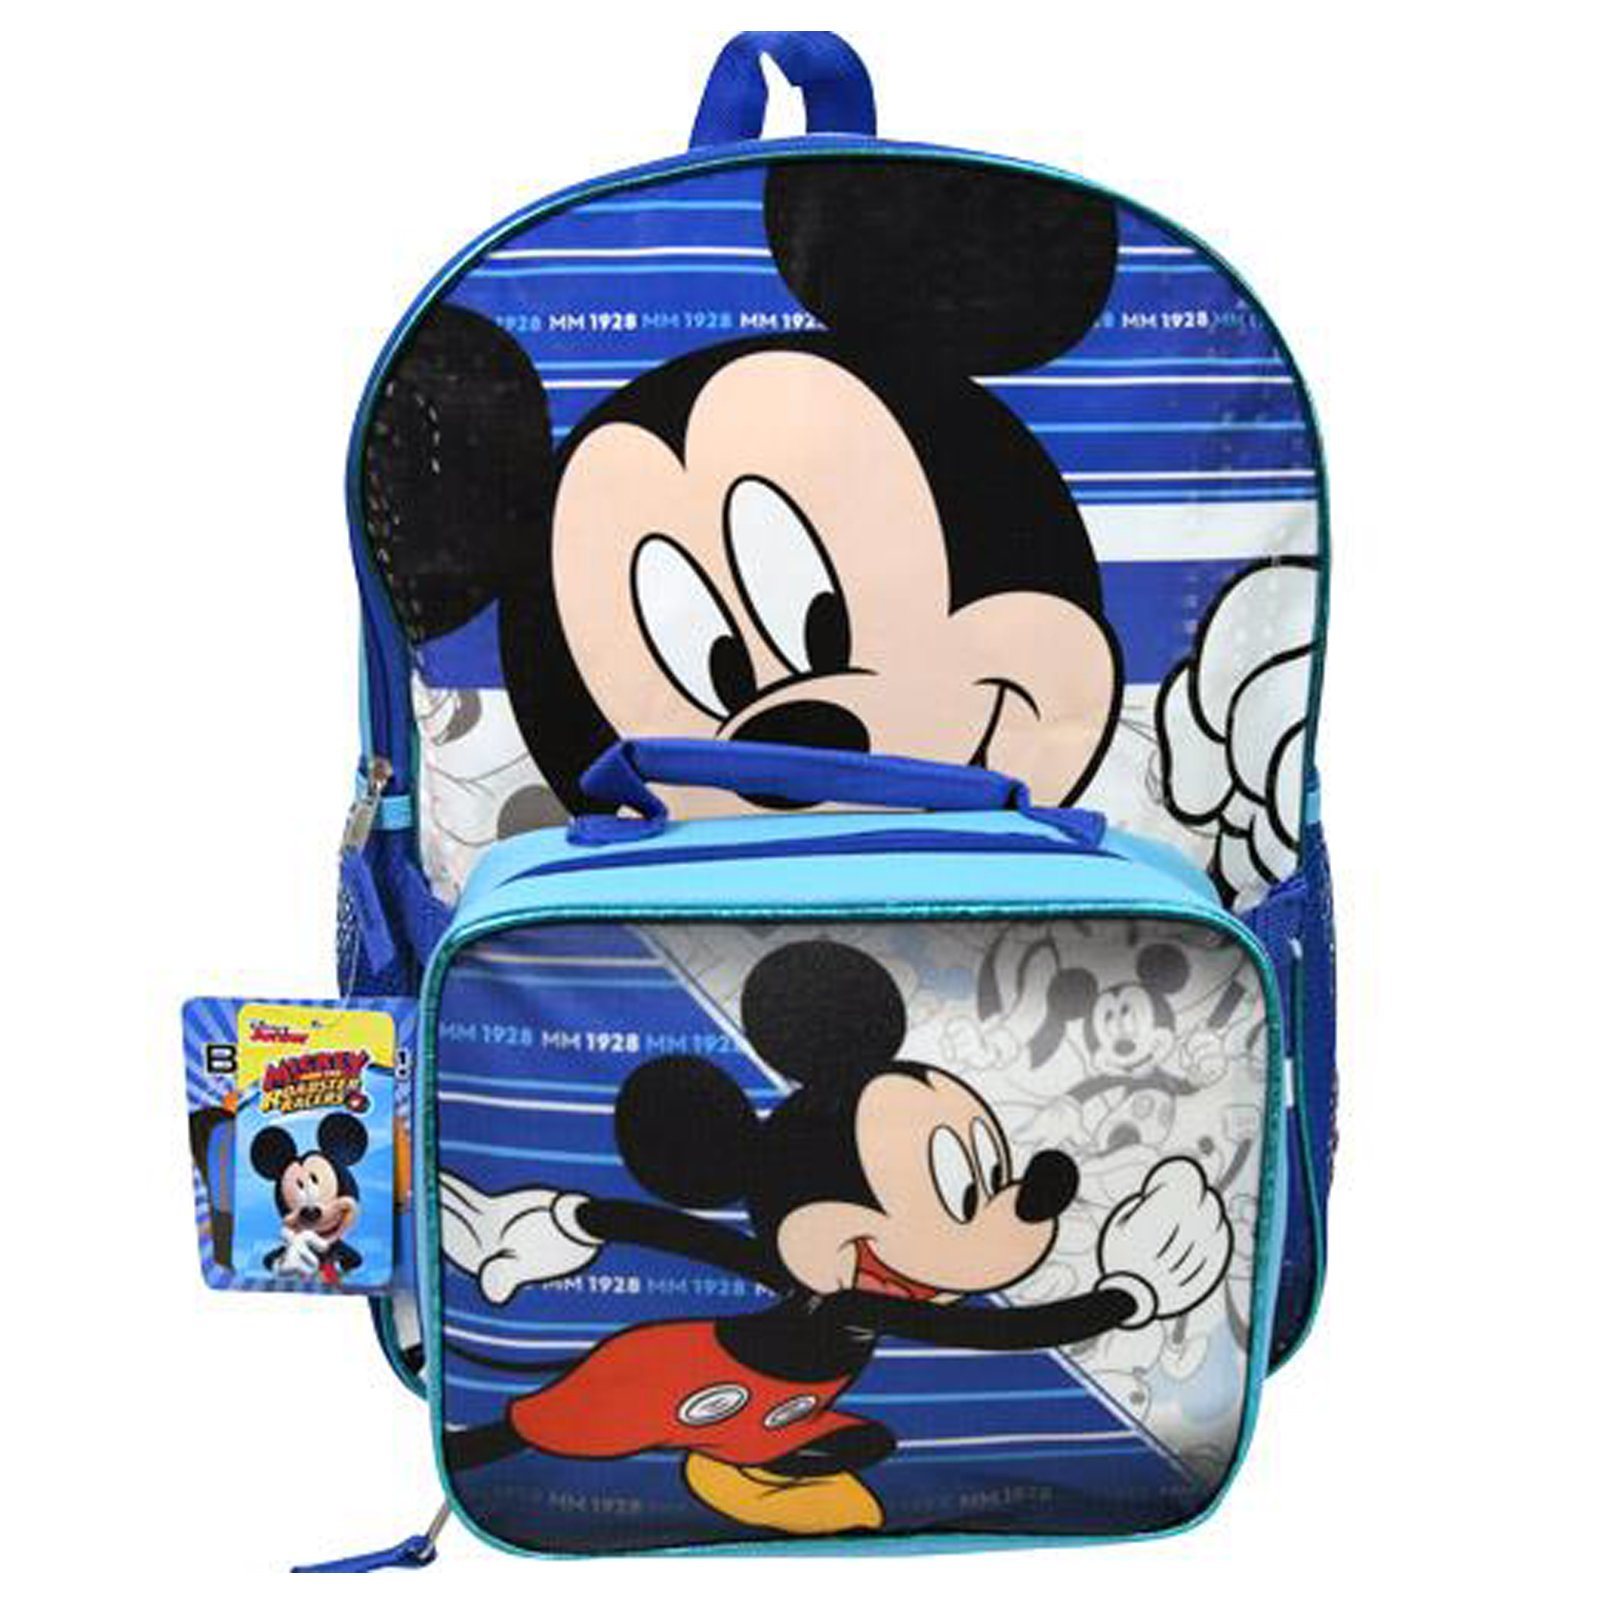 3590a409adc Disney Mickey Mouse Kids School Backpack with Lunch Bag Set Travel Tote